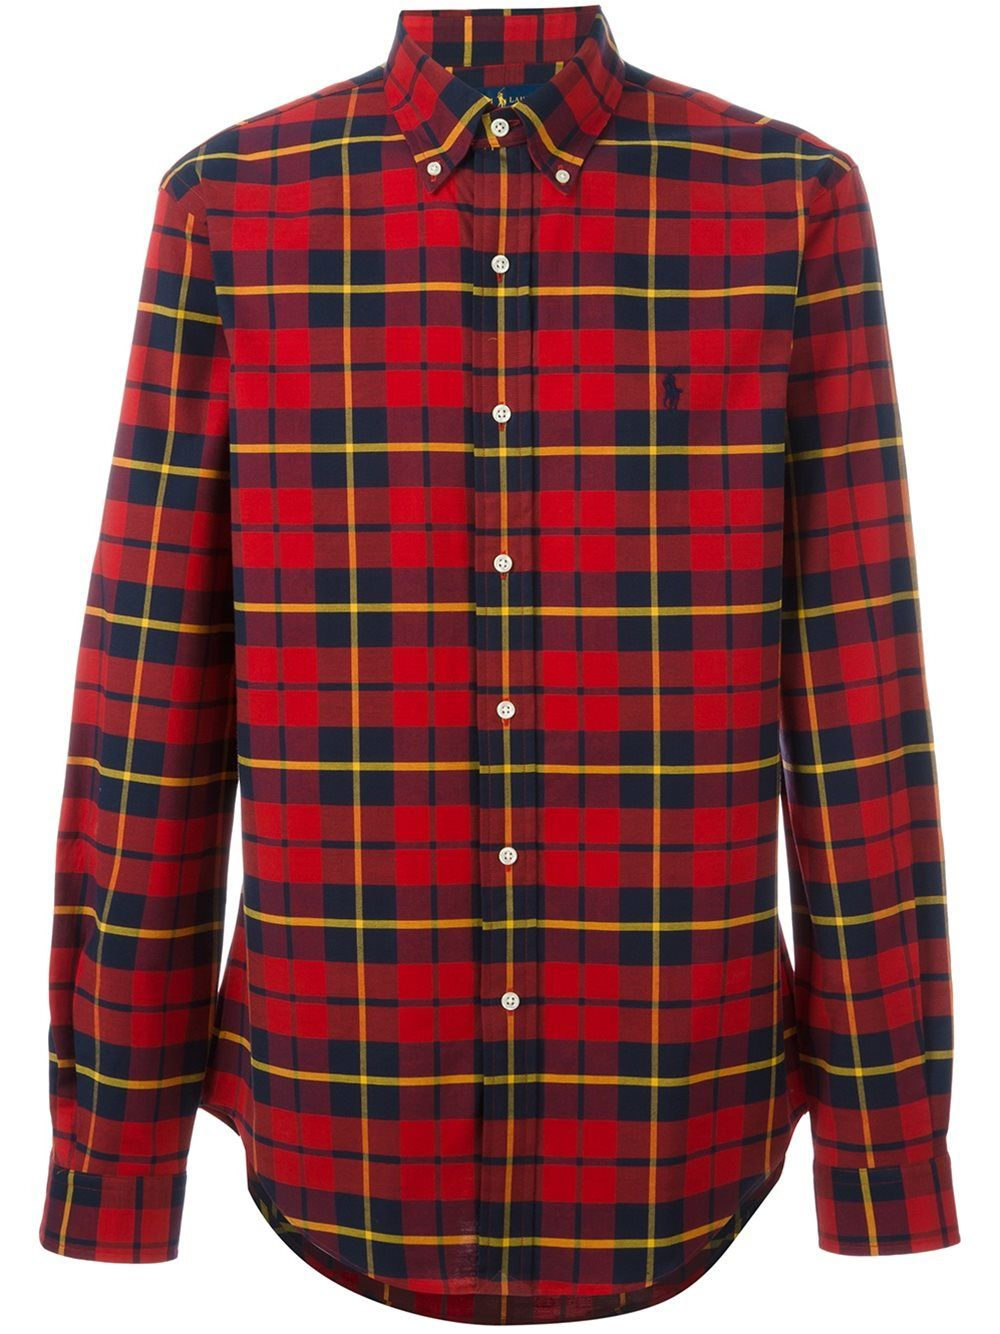 Polo Ralph Lauren Shirts Red Fashion | Polo Ralph Lauren Plaid Shirt Mens